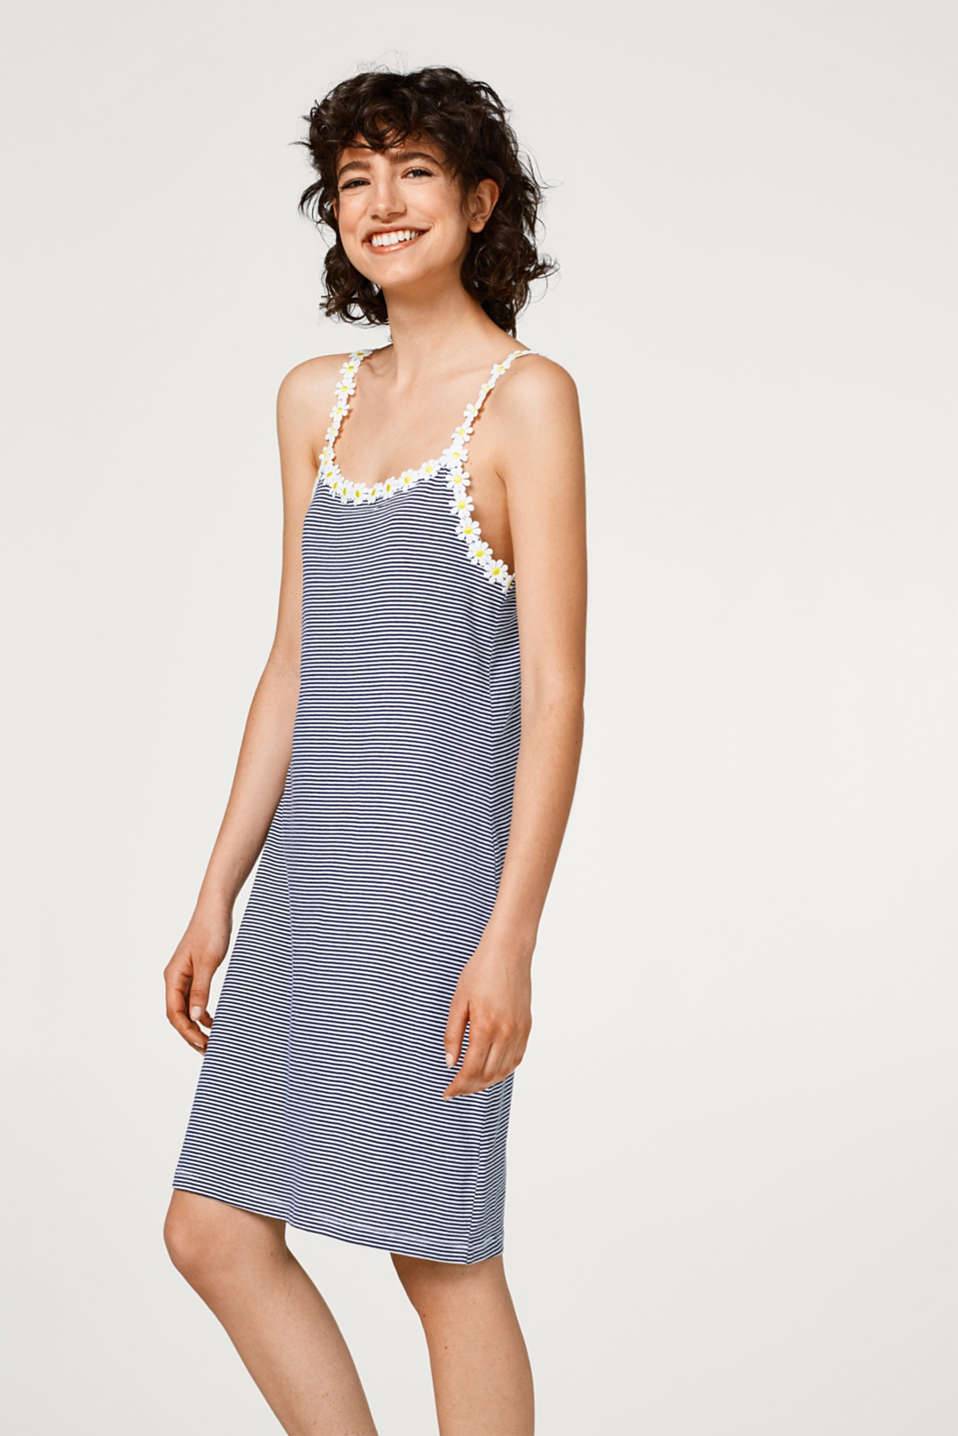 Nightshirt with spaghetti straps